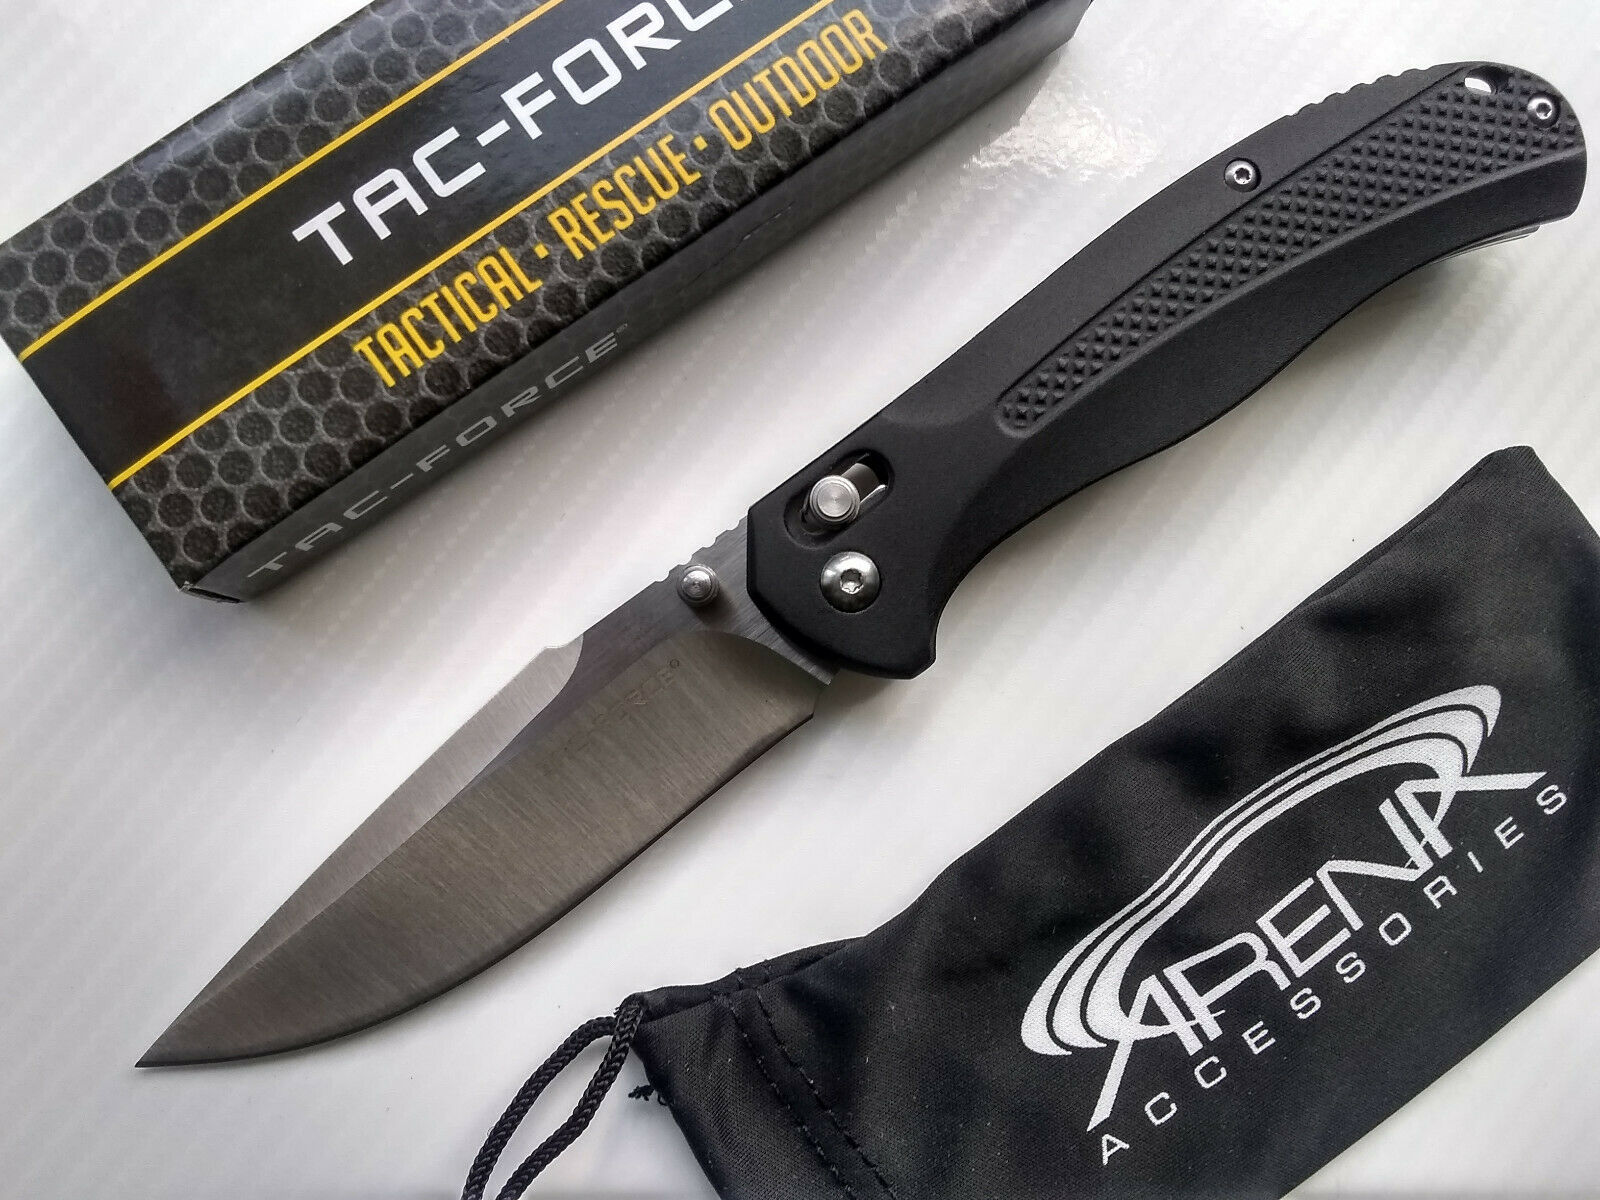 Black Manual Axis Lock Pocket Knife Tip Up Carry Dual Thumb Studs